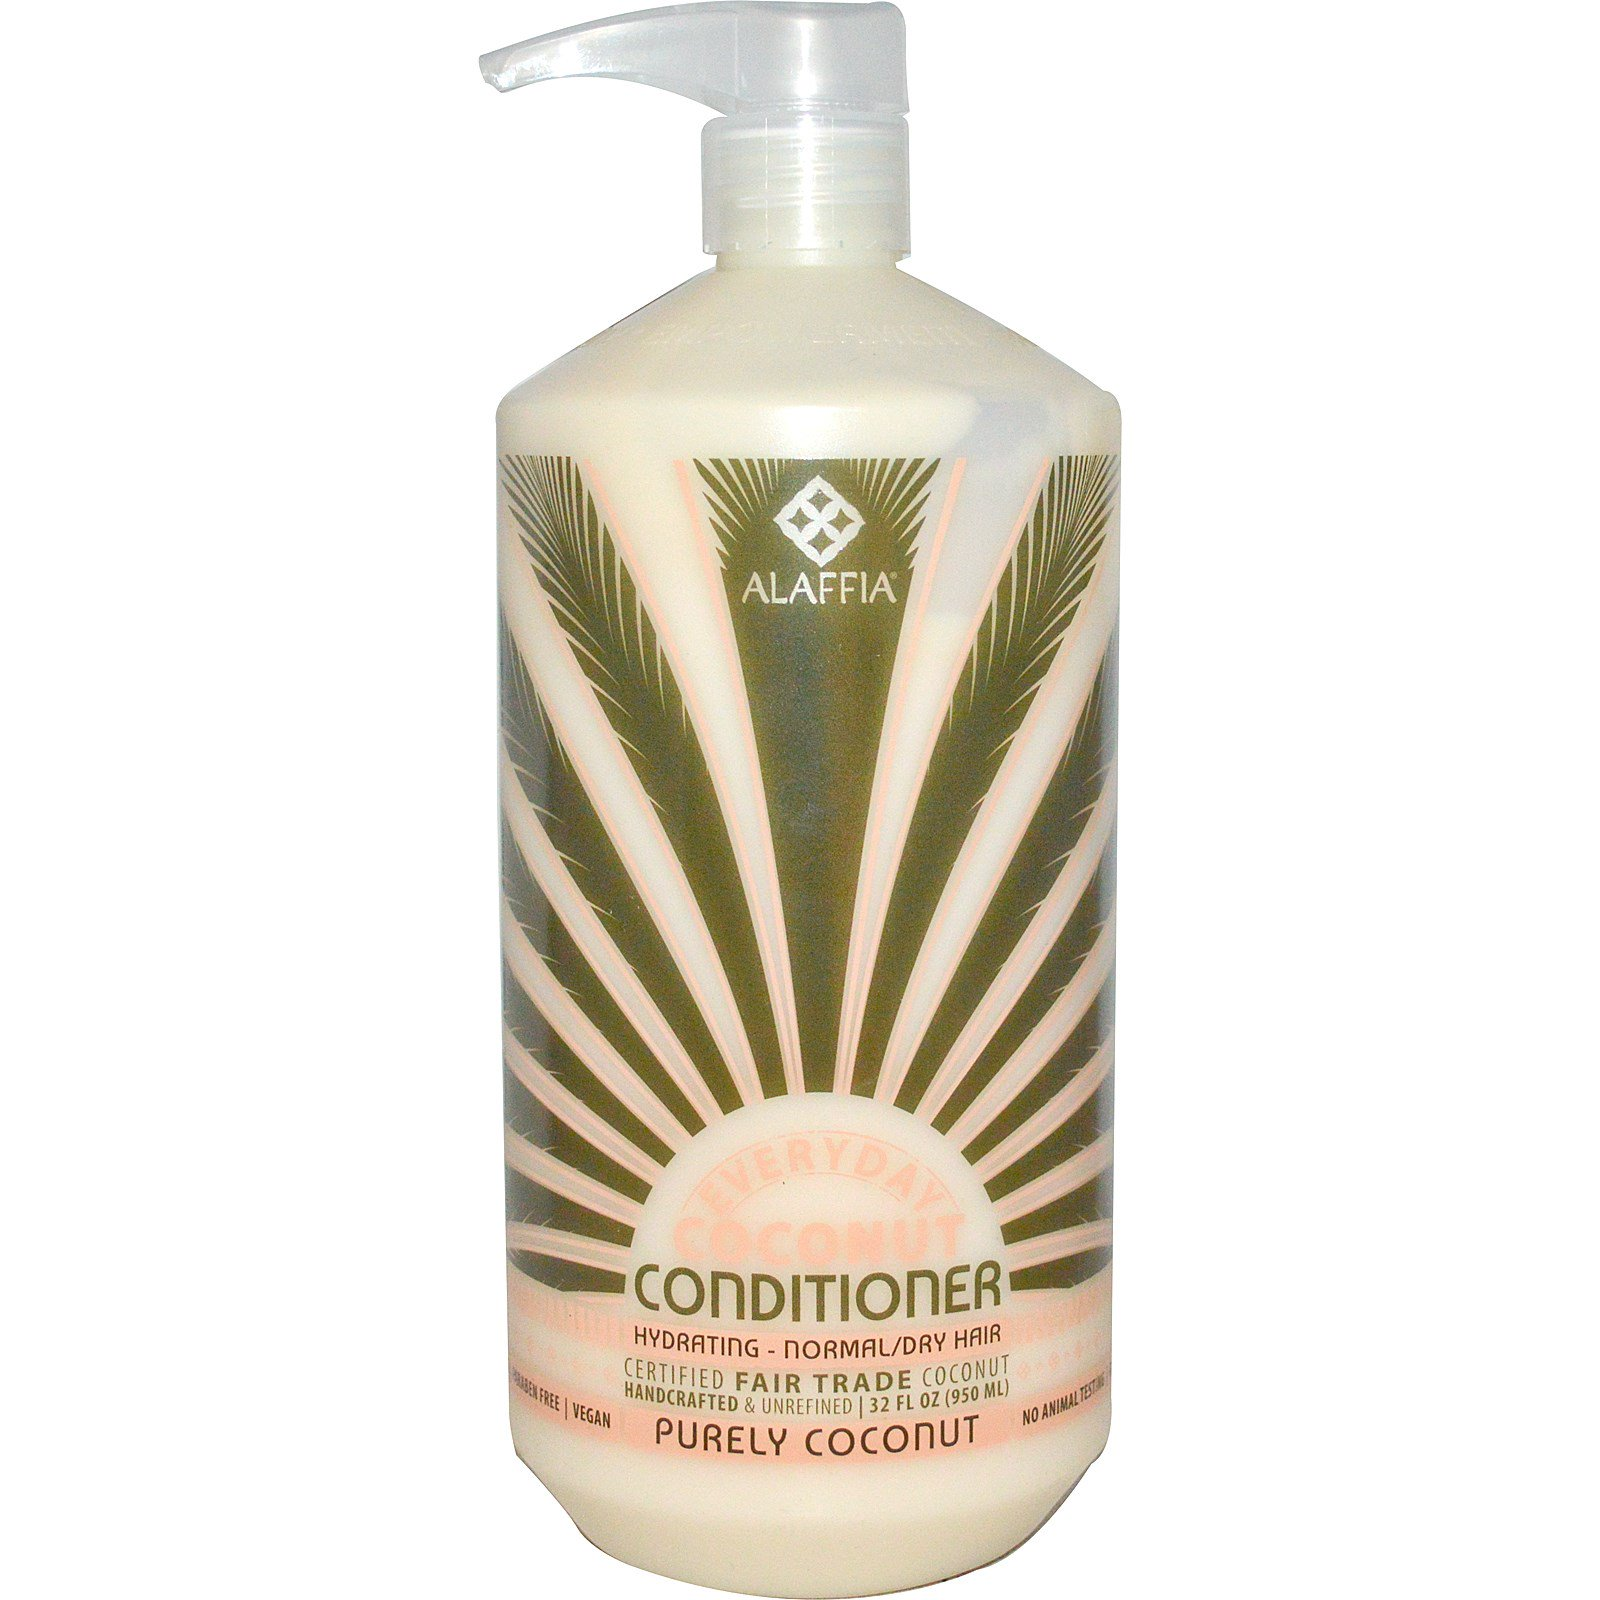 Everyday Coconut, Conditioner, Hydrating, Normal/Dry Hair, Purely Coconut, 32 fl oz (950 ml)